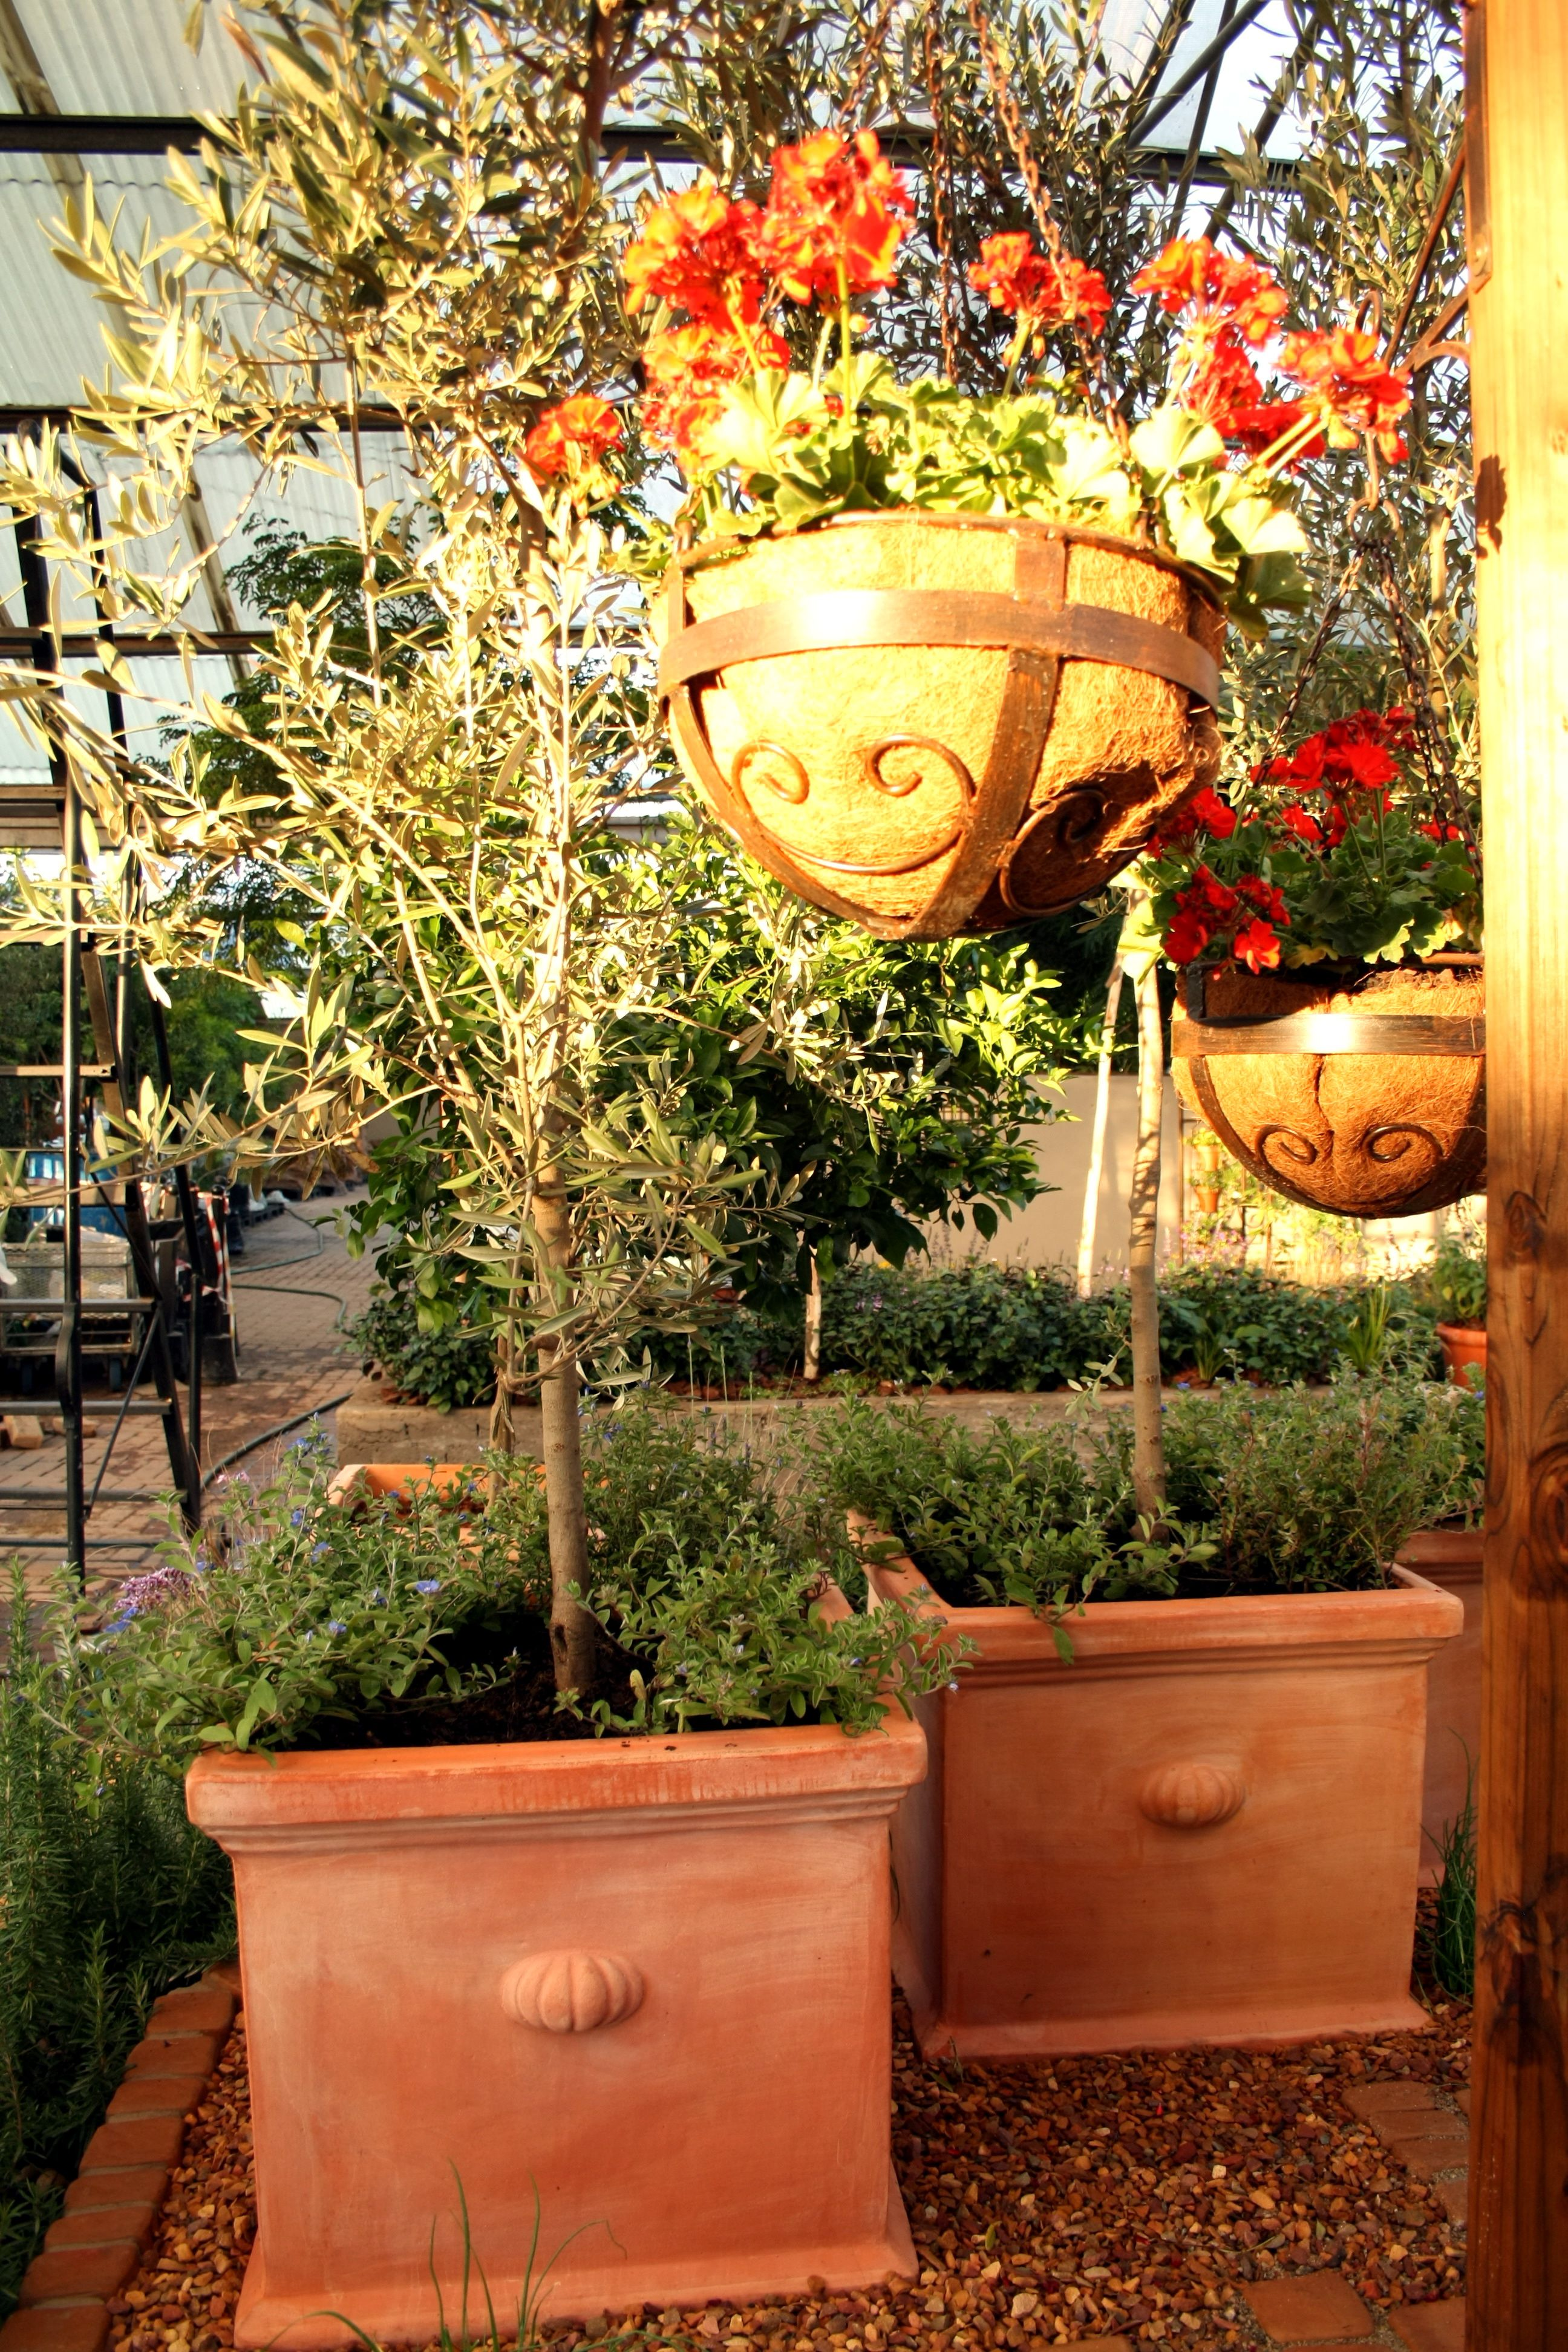 Water wise South African garden Mediterranean plants potager small ...